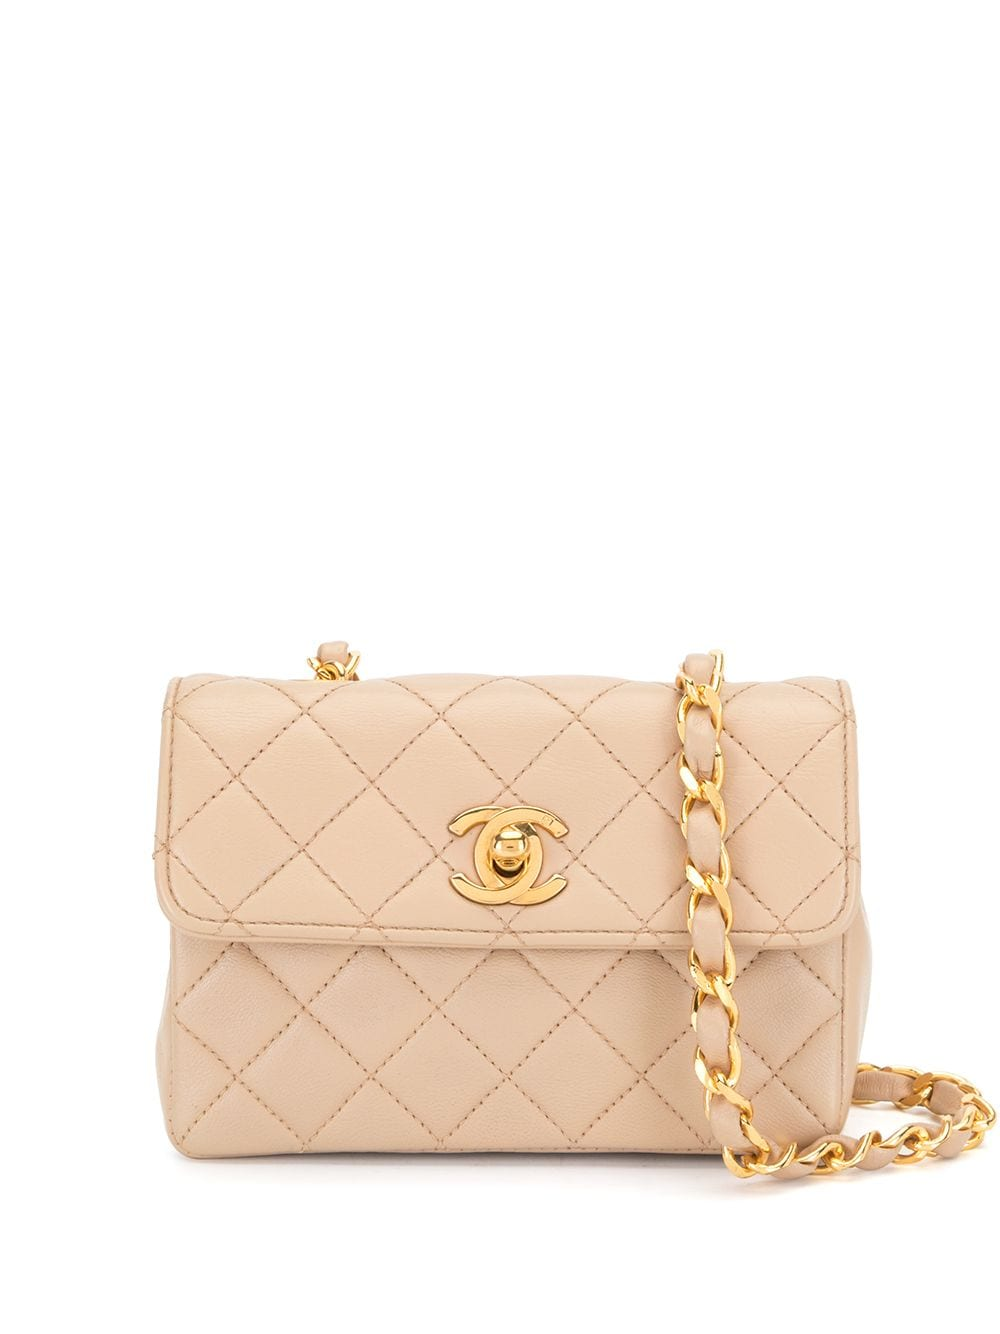 Chanel Pre-Owned 1990 diamond-quilted mini bag - Pink